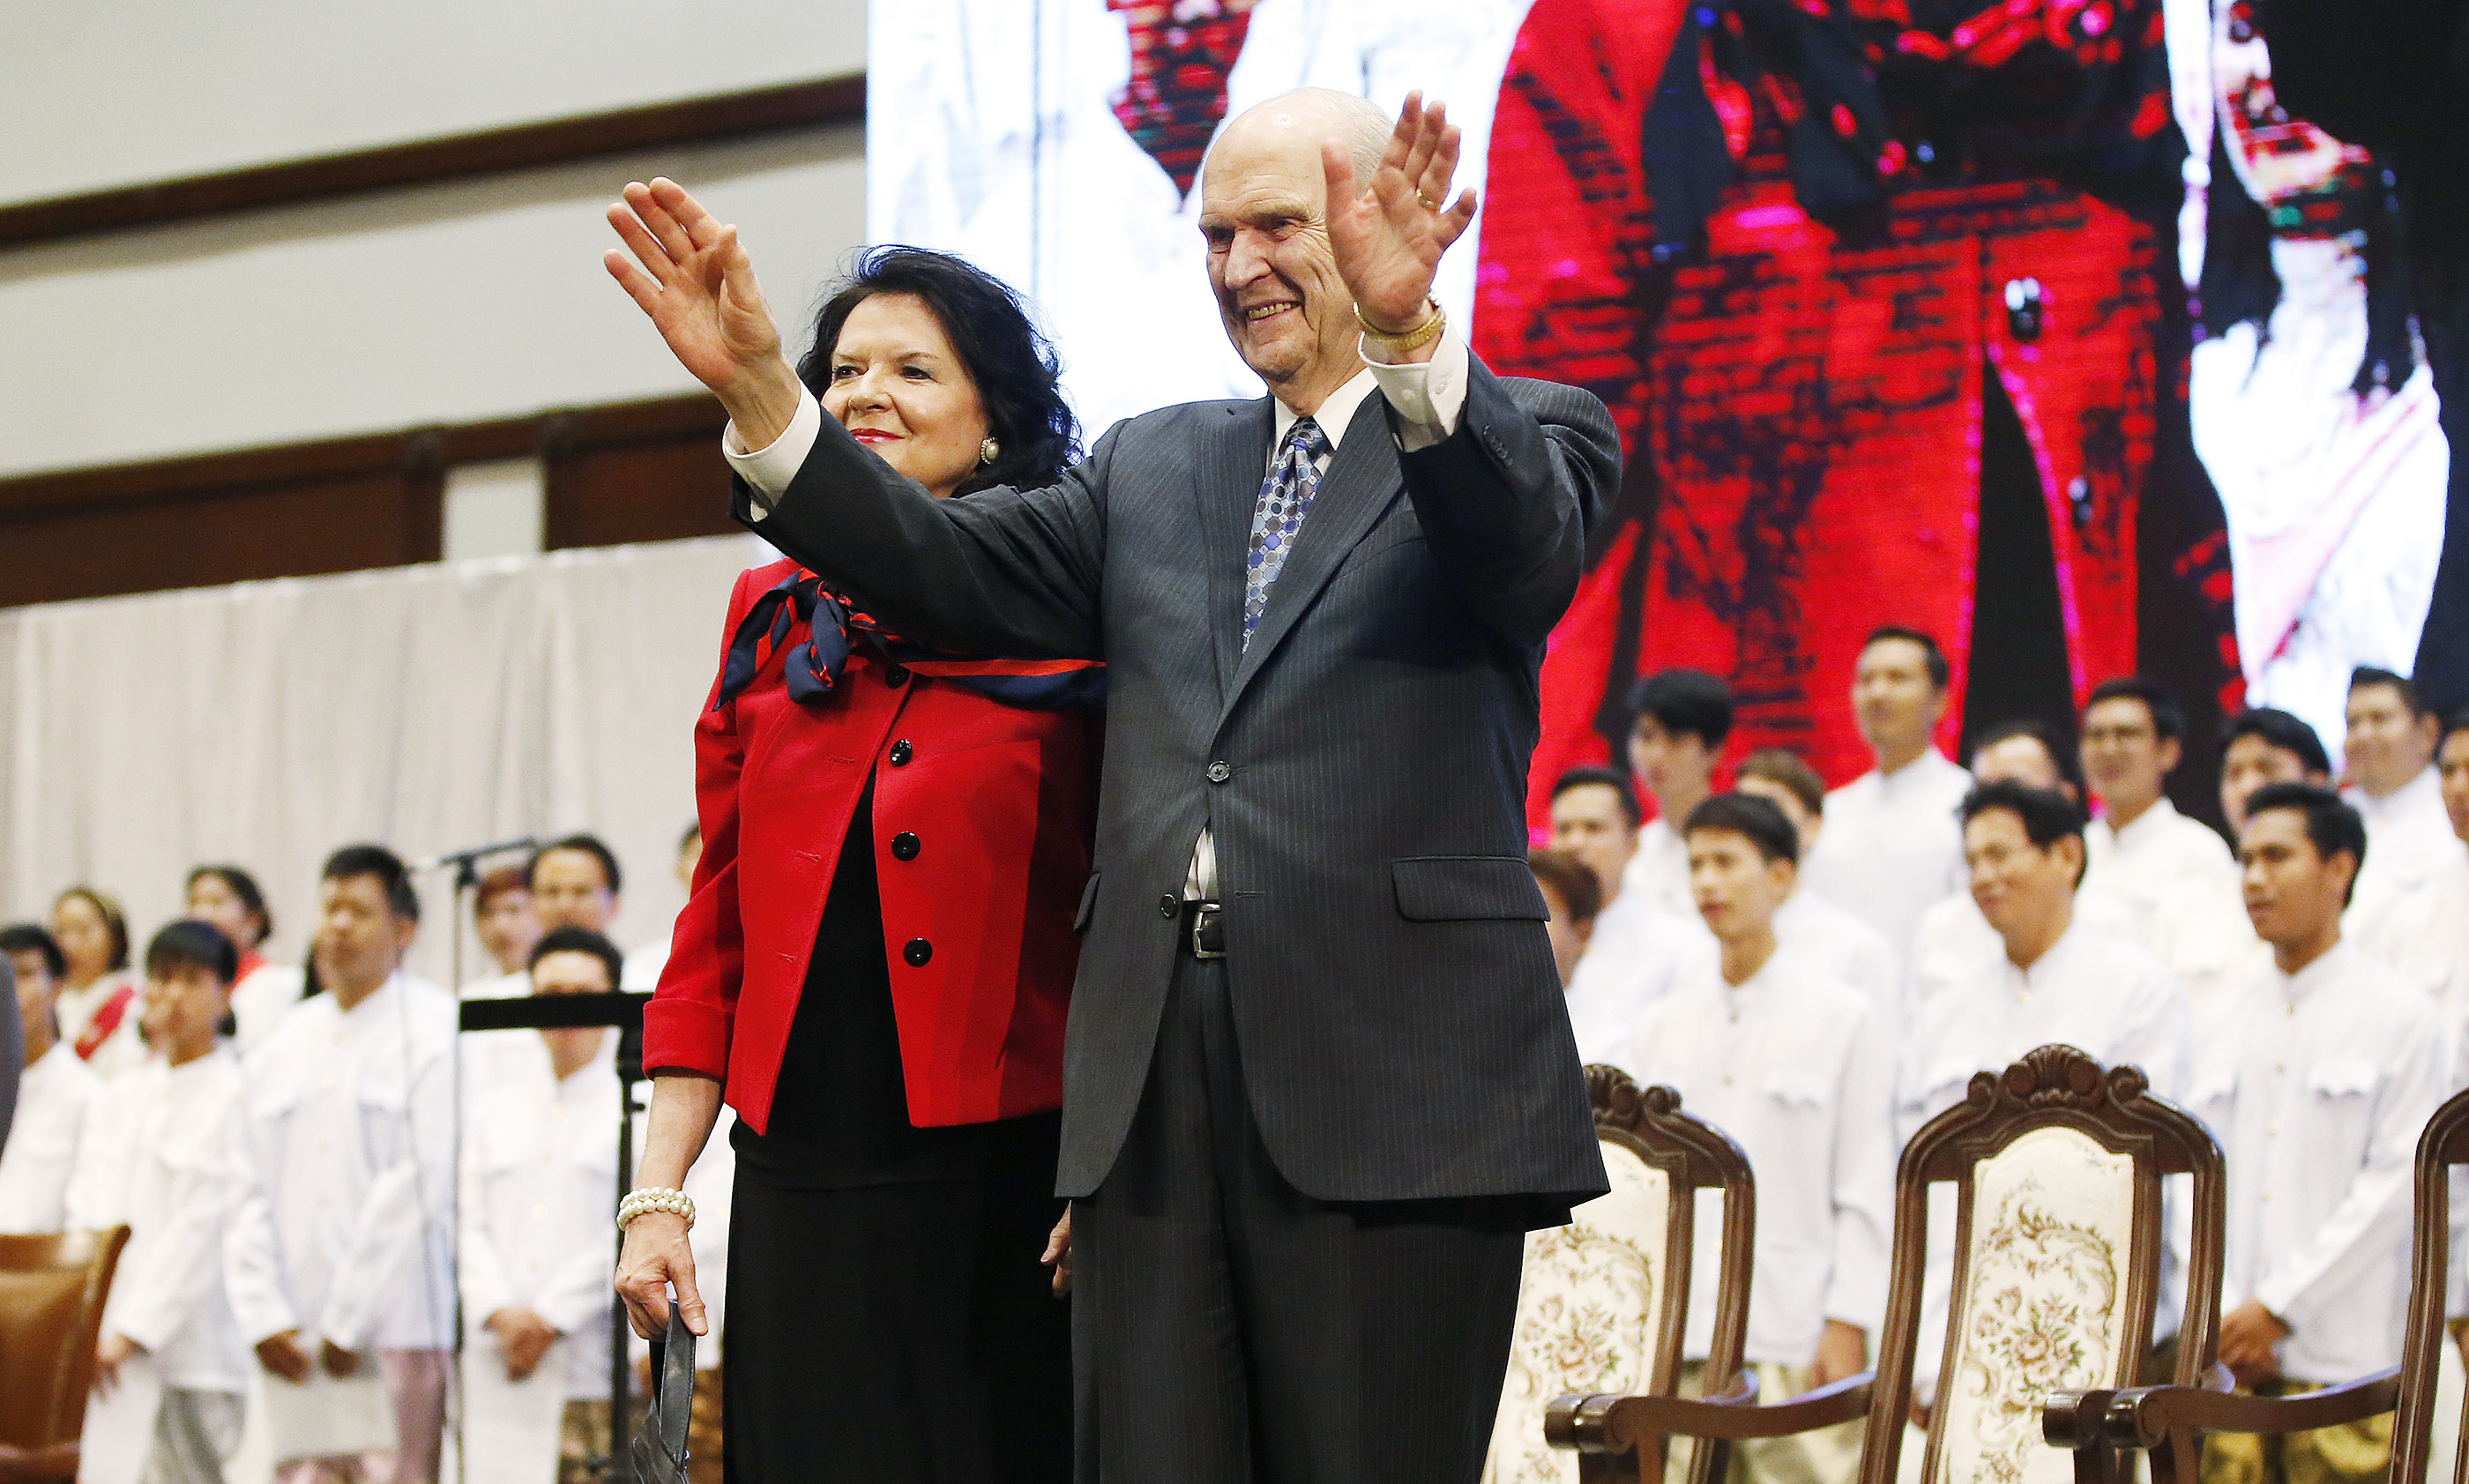 Russell M. Nelson, President of The Church of Jesus Christ of Latter-day Saints, and his wife, Sister Wendy Nelson, wave to attendees after a devotional in Bangkok, Thailand, on Friday, April 20, 2018.